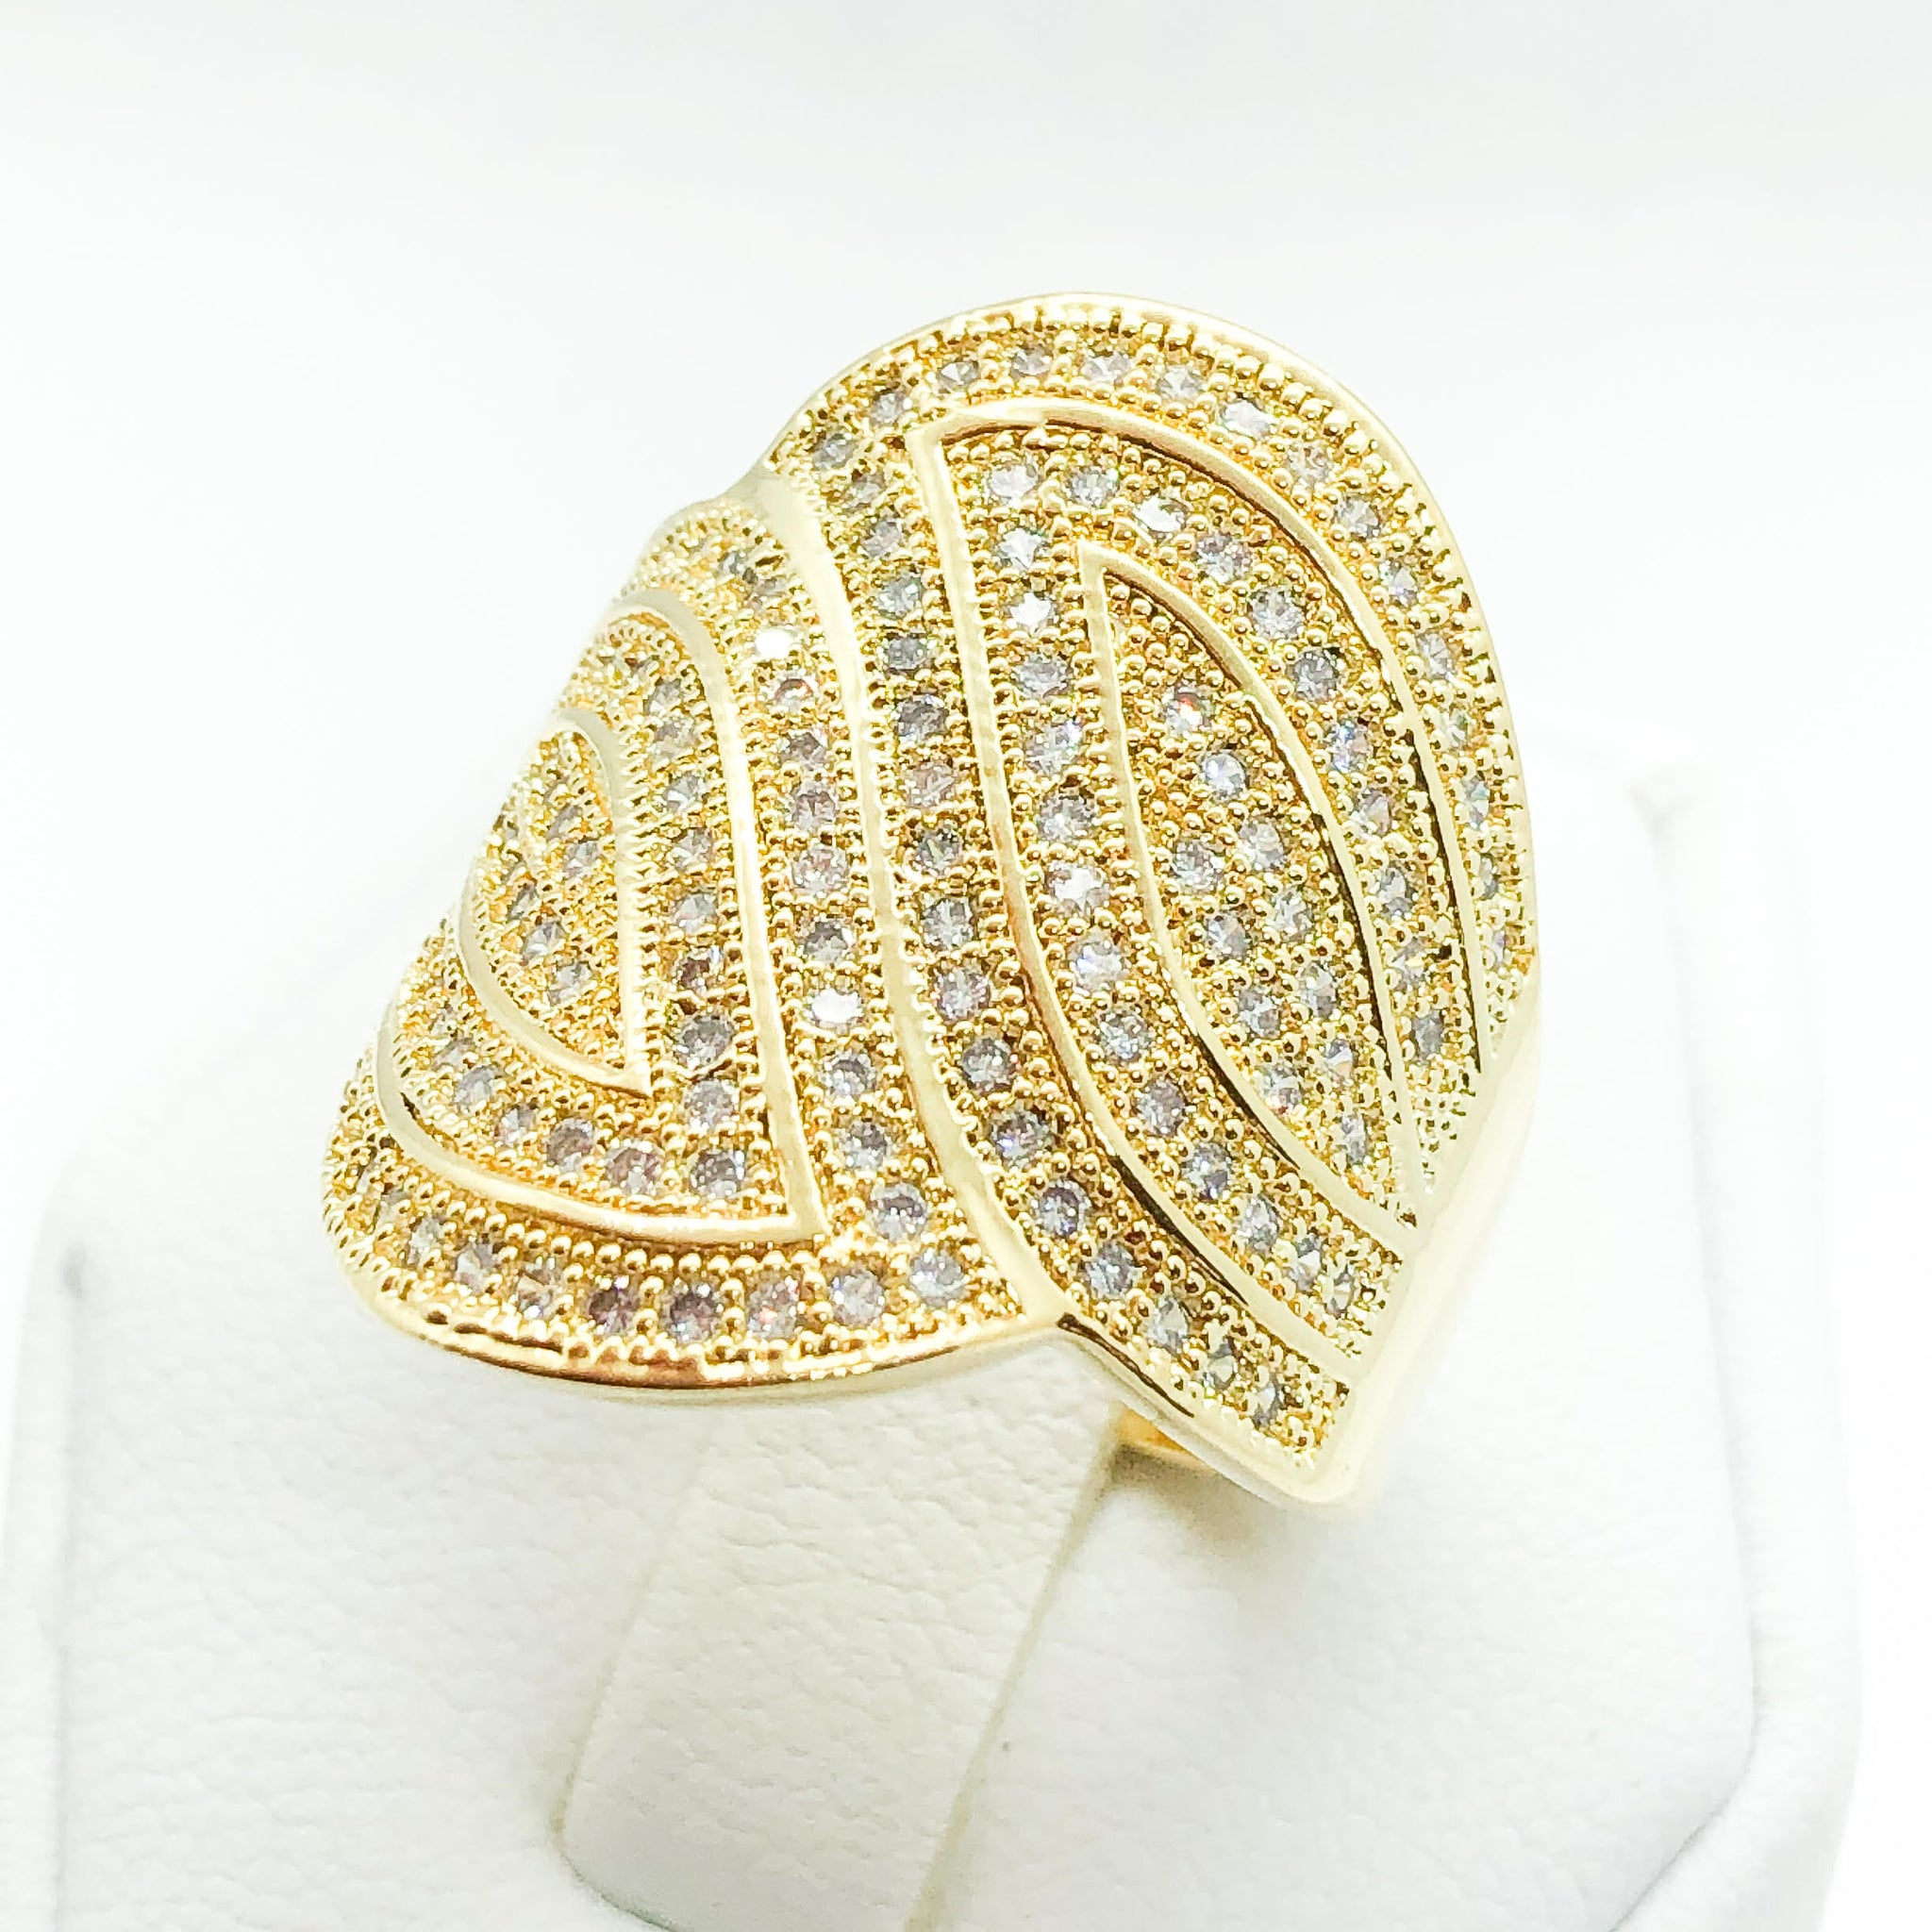 ID:R6358 Women 18K Yellow Gold GF Fashion Jewelry Leaves Design Anniversary Promise Eternity Ring